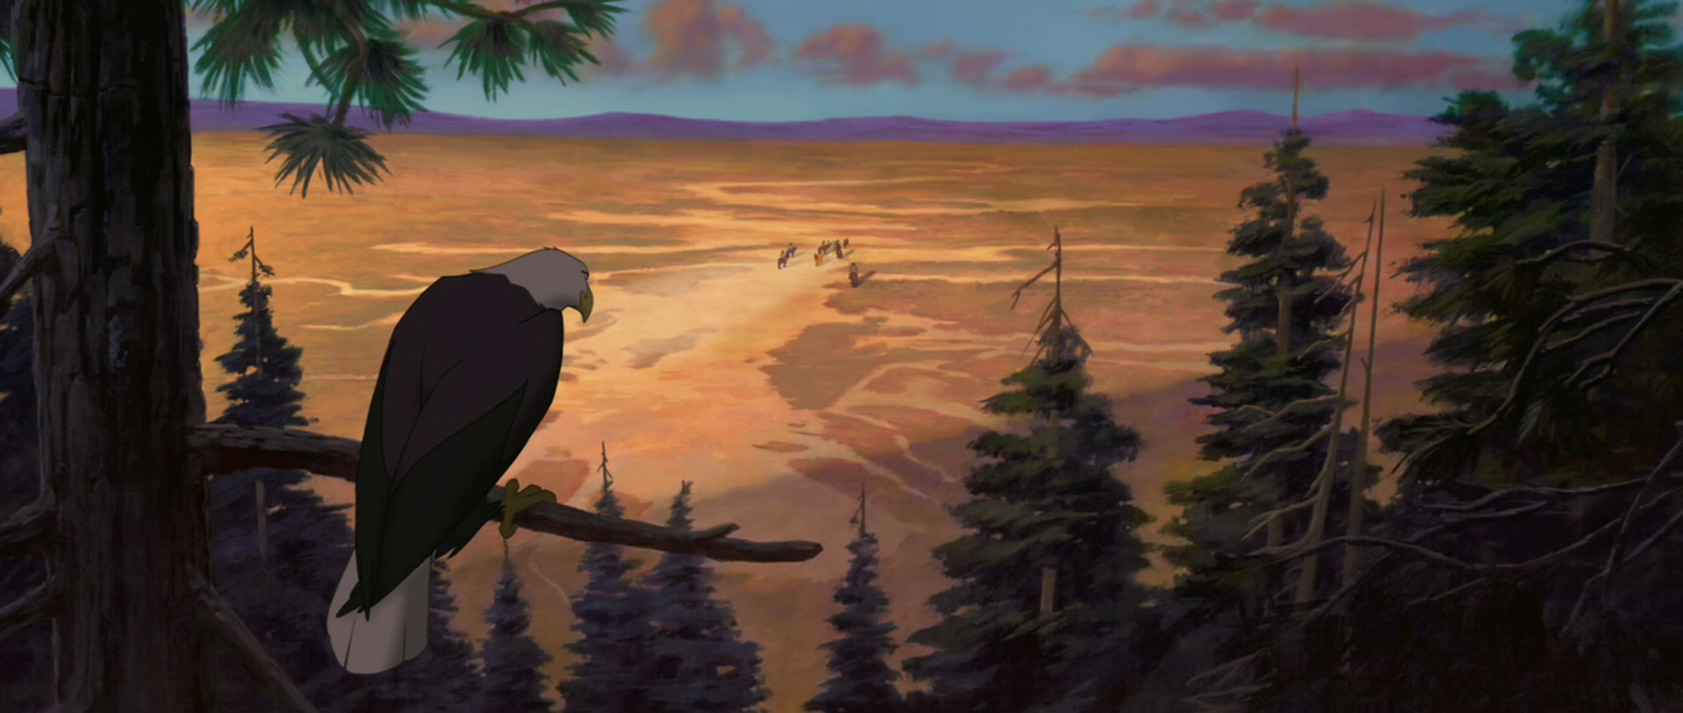 spirit-stallion-disneyscreencaps.com-2159.jpg